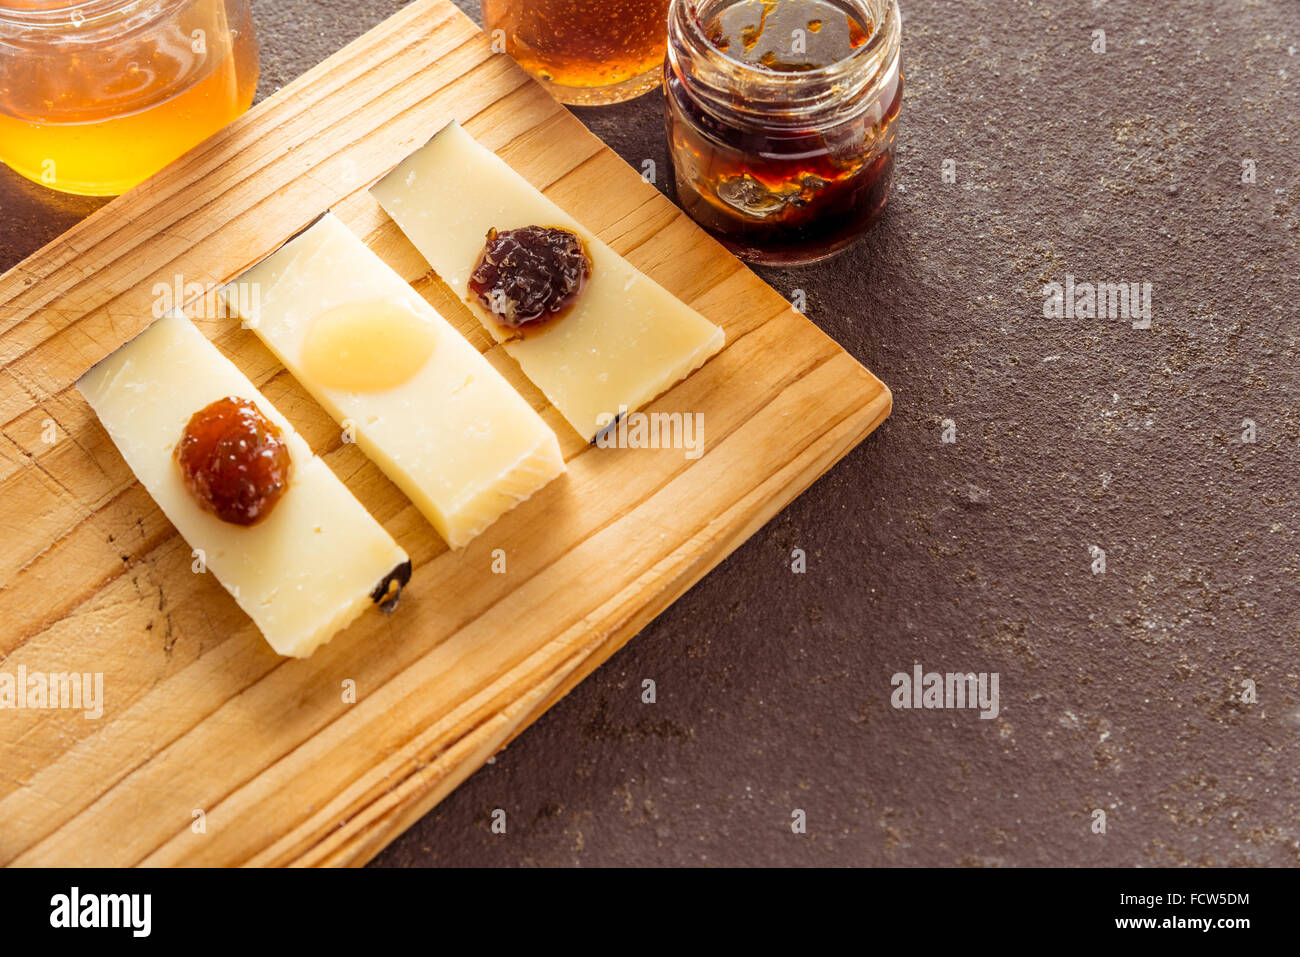 A composition of italian cheese pecorino slices with jams of different flavours on a wooden chopping board - Stock Image